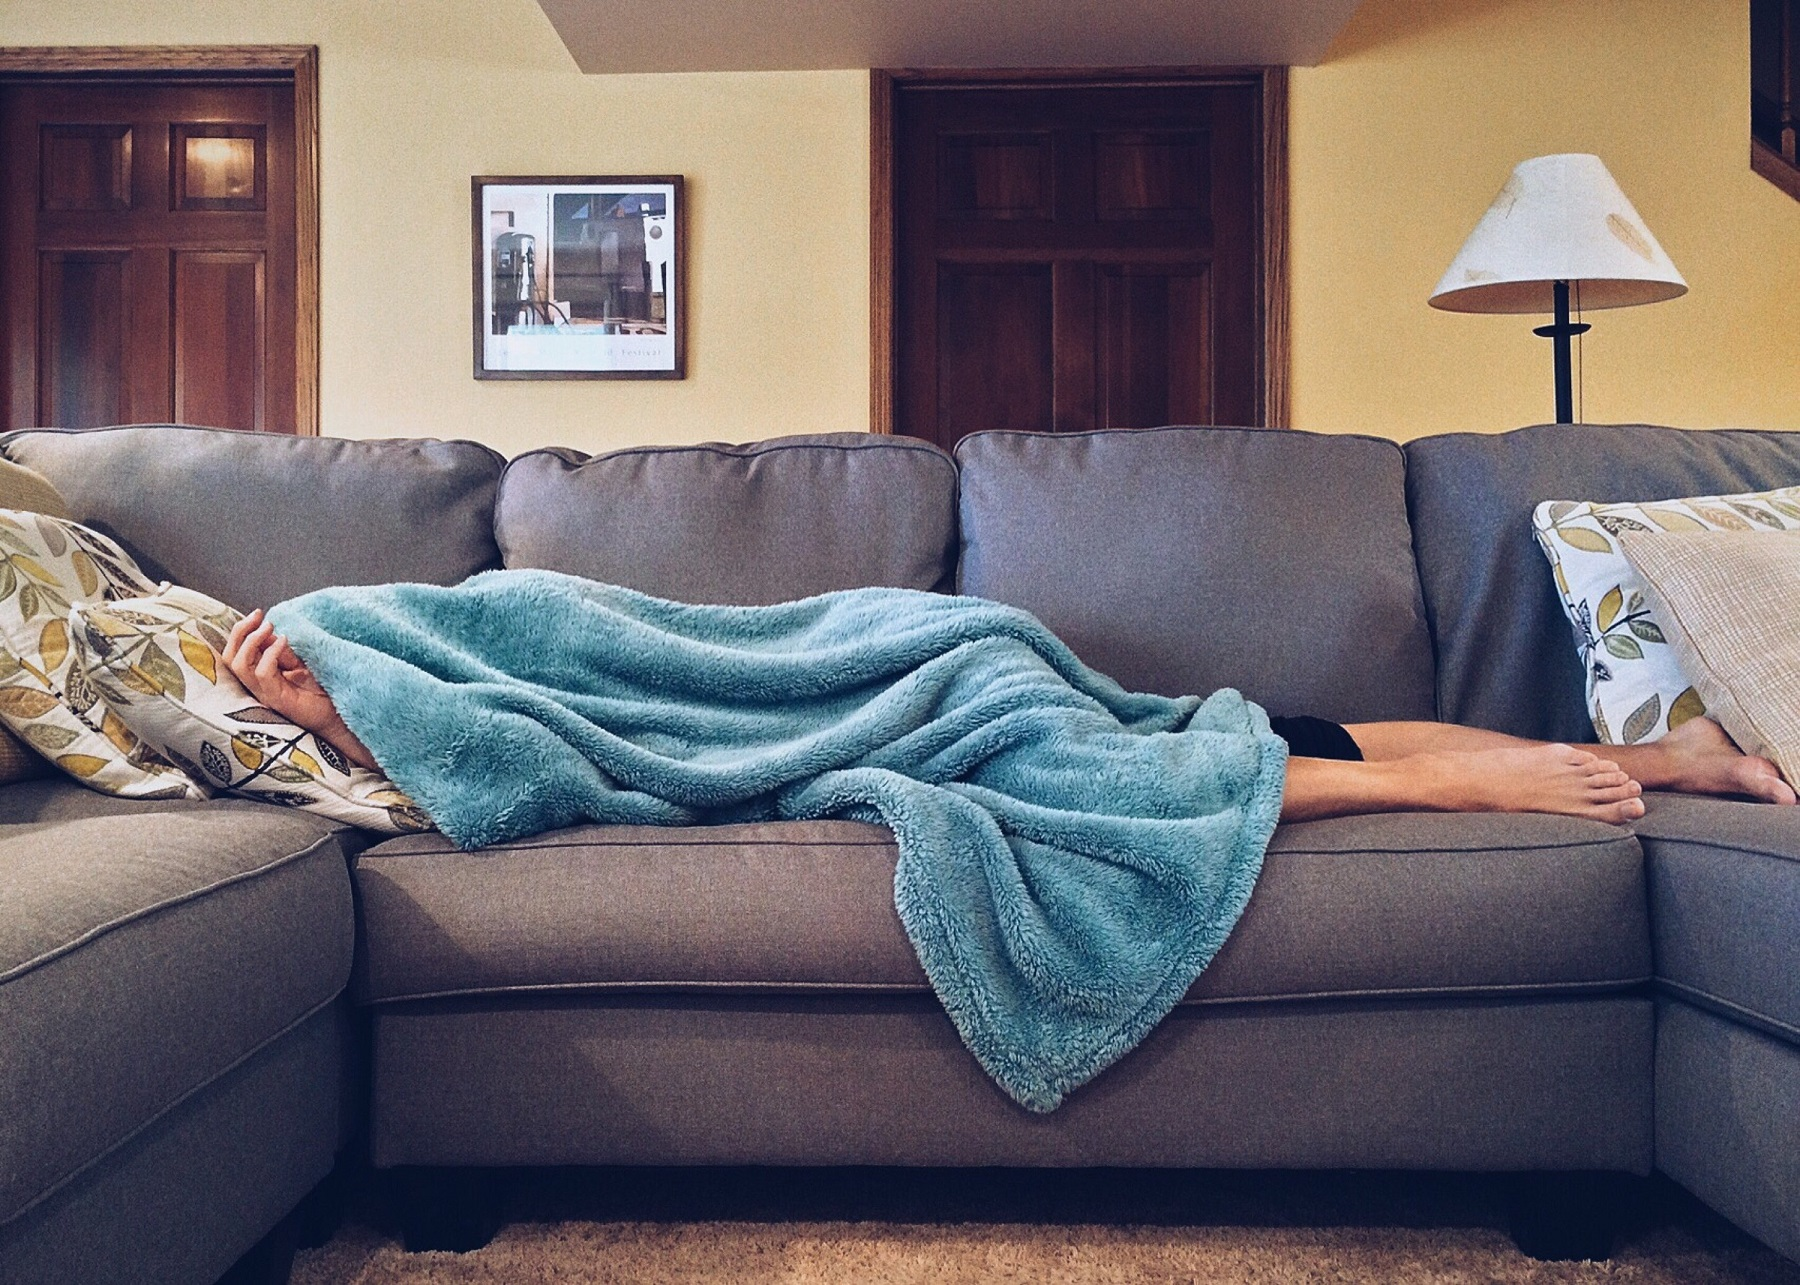 Person sick with flu lying on the sofa under a blanket